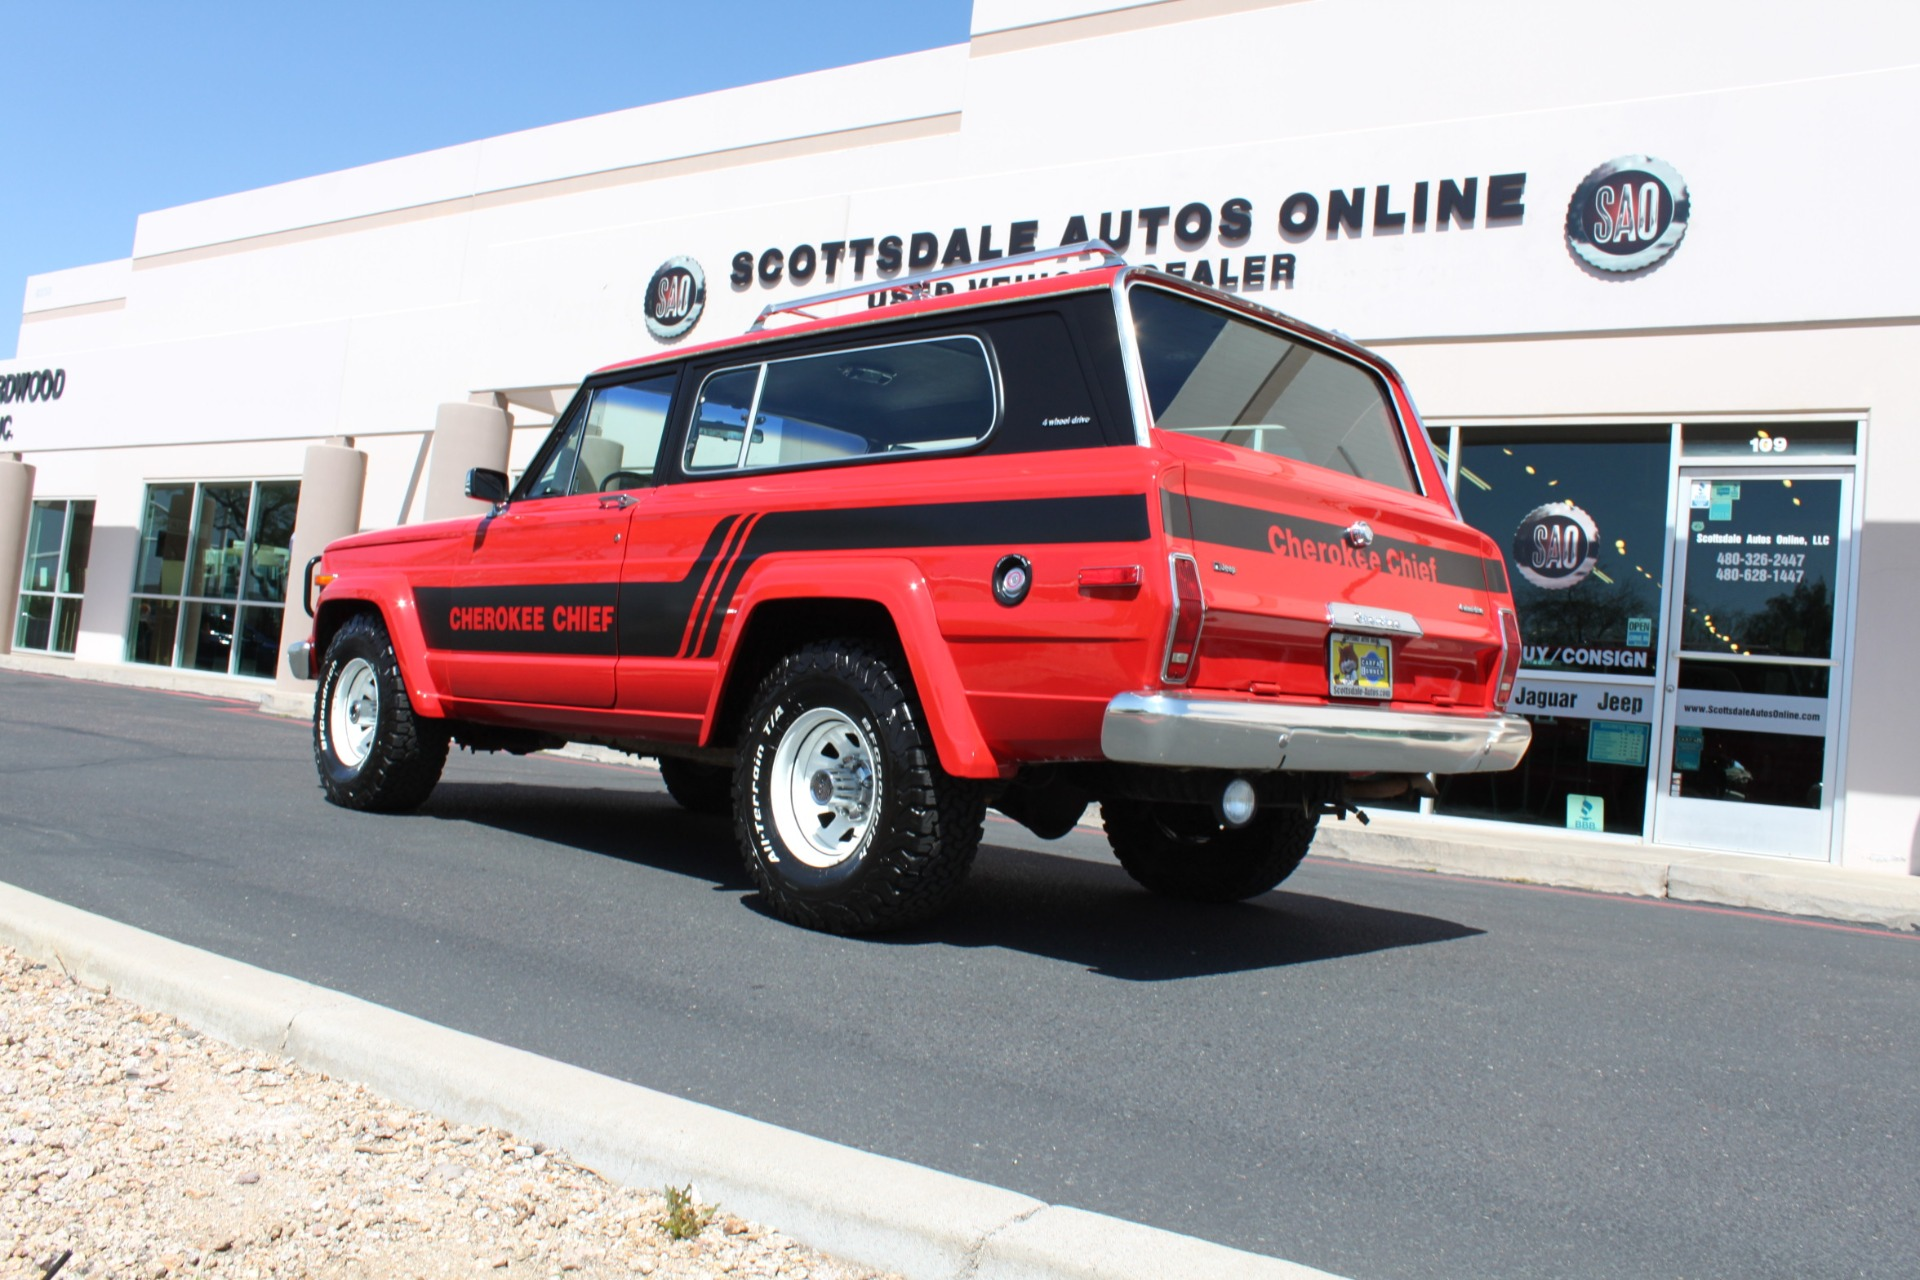 Used-1983-Jeep-Cherokee-Chief-4WD-Fiat